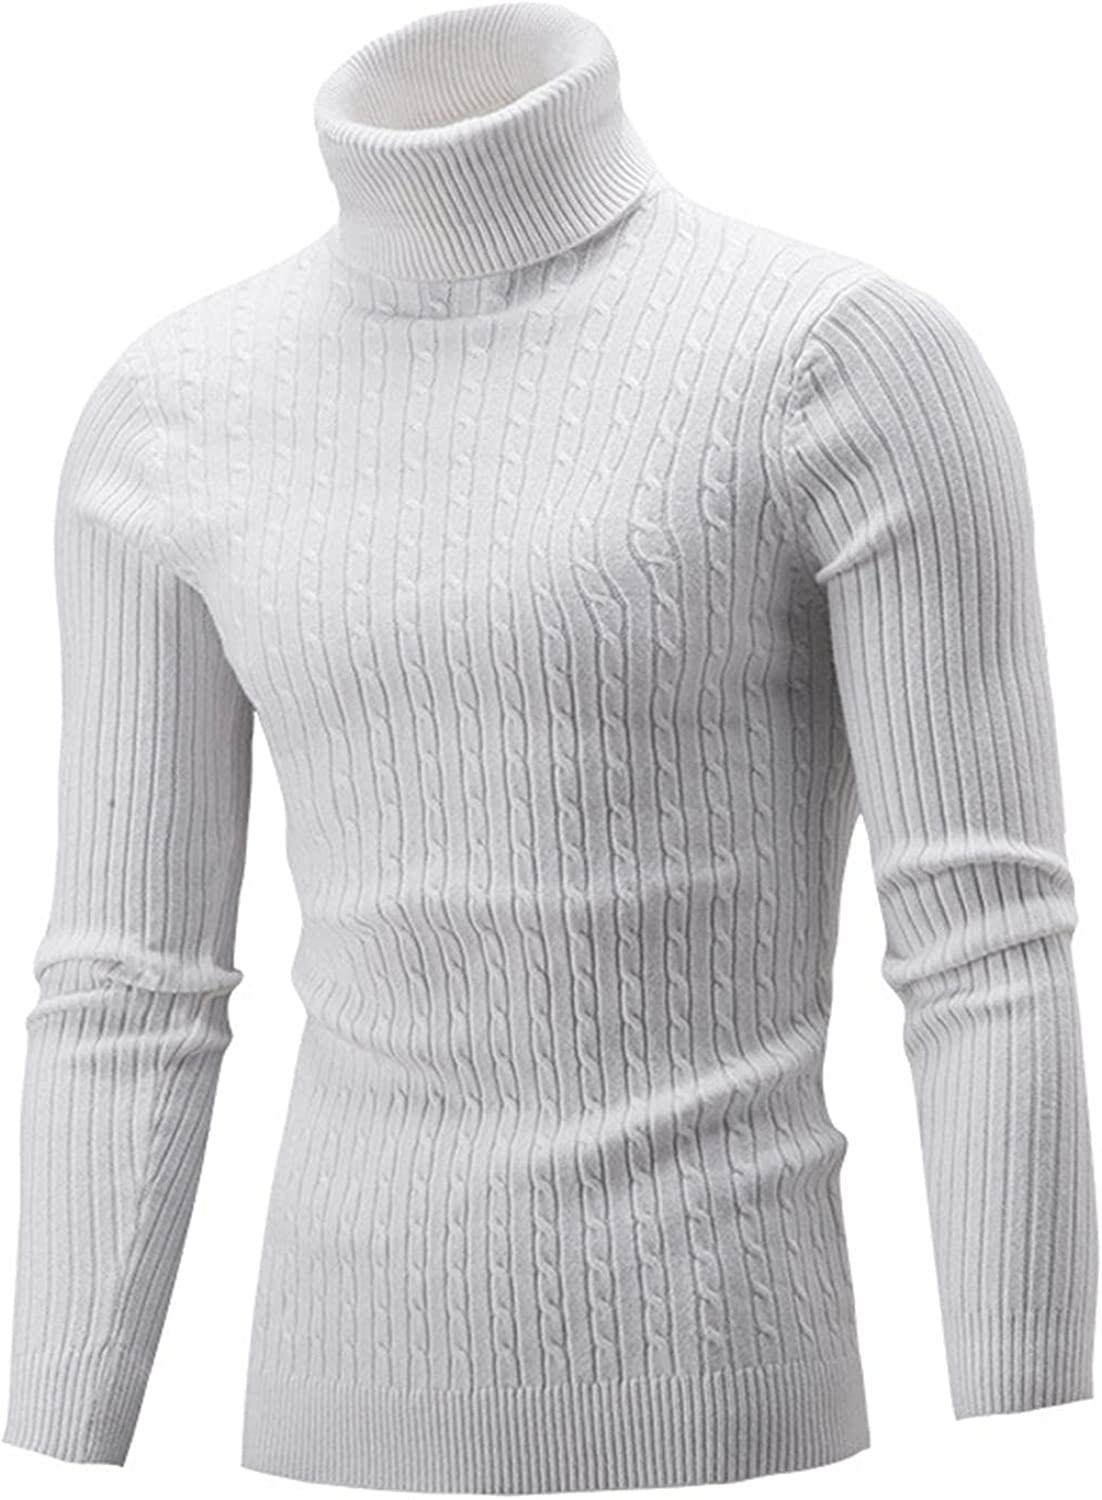 Men's Casual Long Sleeve Pullover Turtleneck Sweaters Tops Slim Fit Solid Color Shirt High Neck Blouse